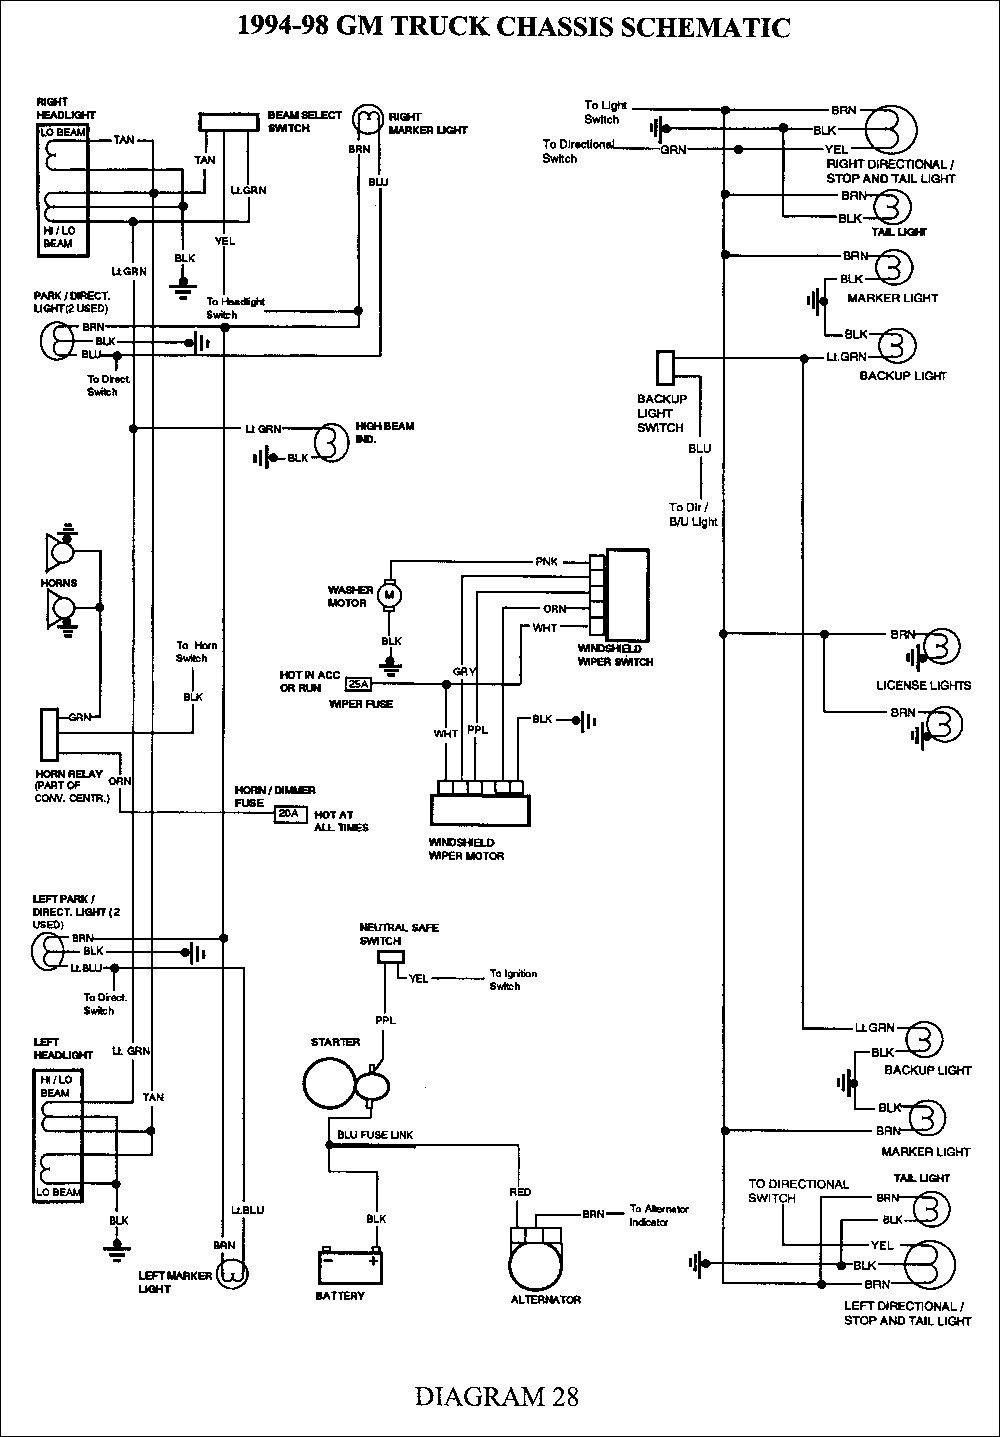 hight resolution of electric schematic diagram 2000 454 vortec wiring diagram expert 1995 chevy 454 vortec engine diagram